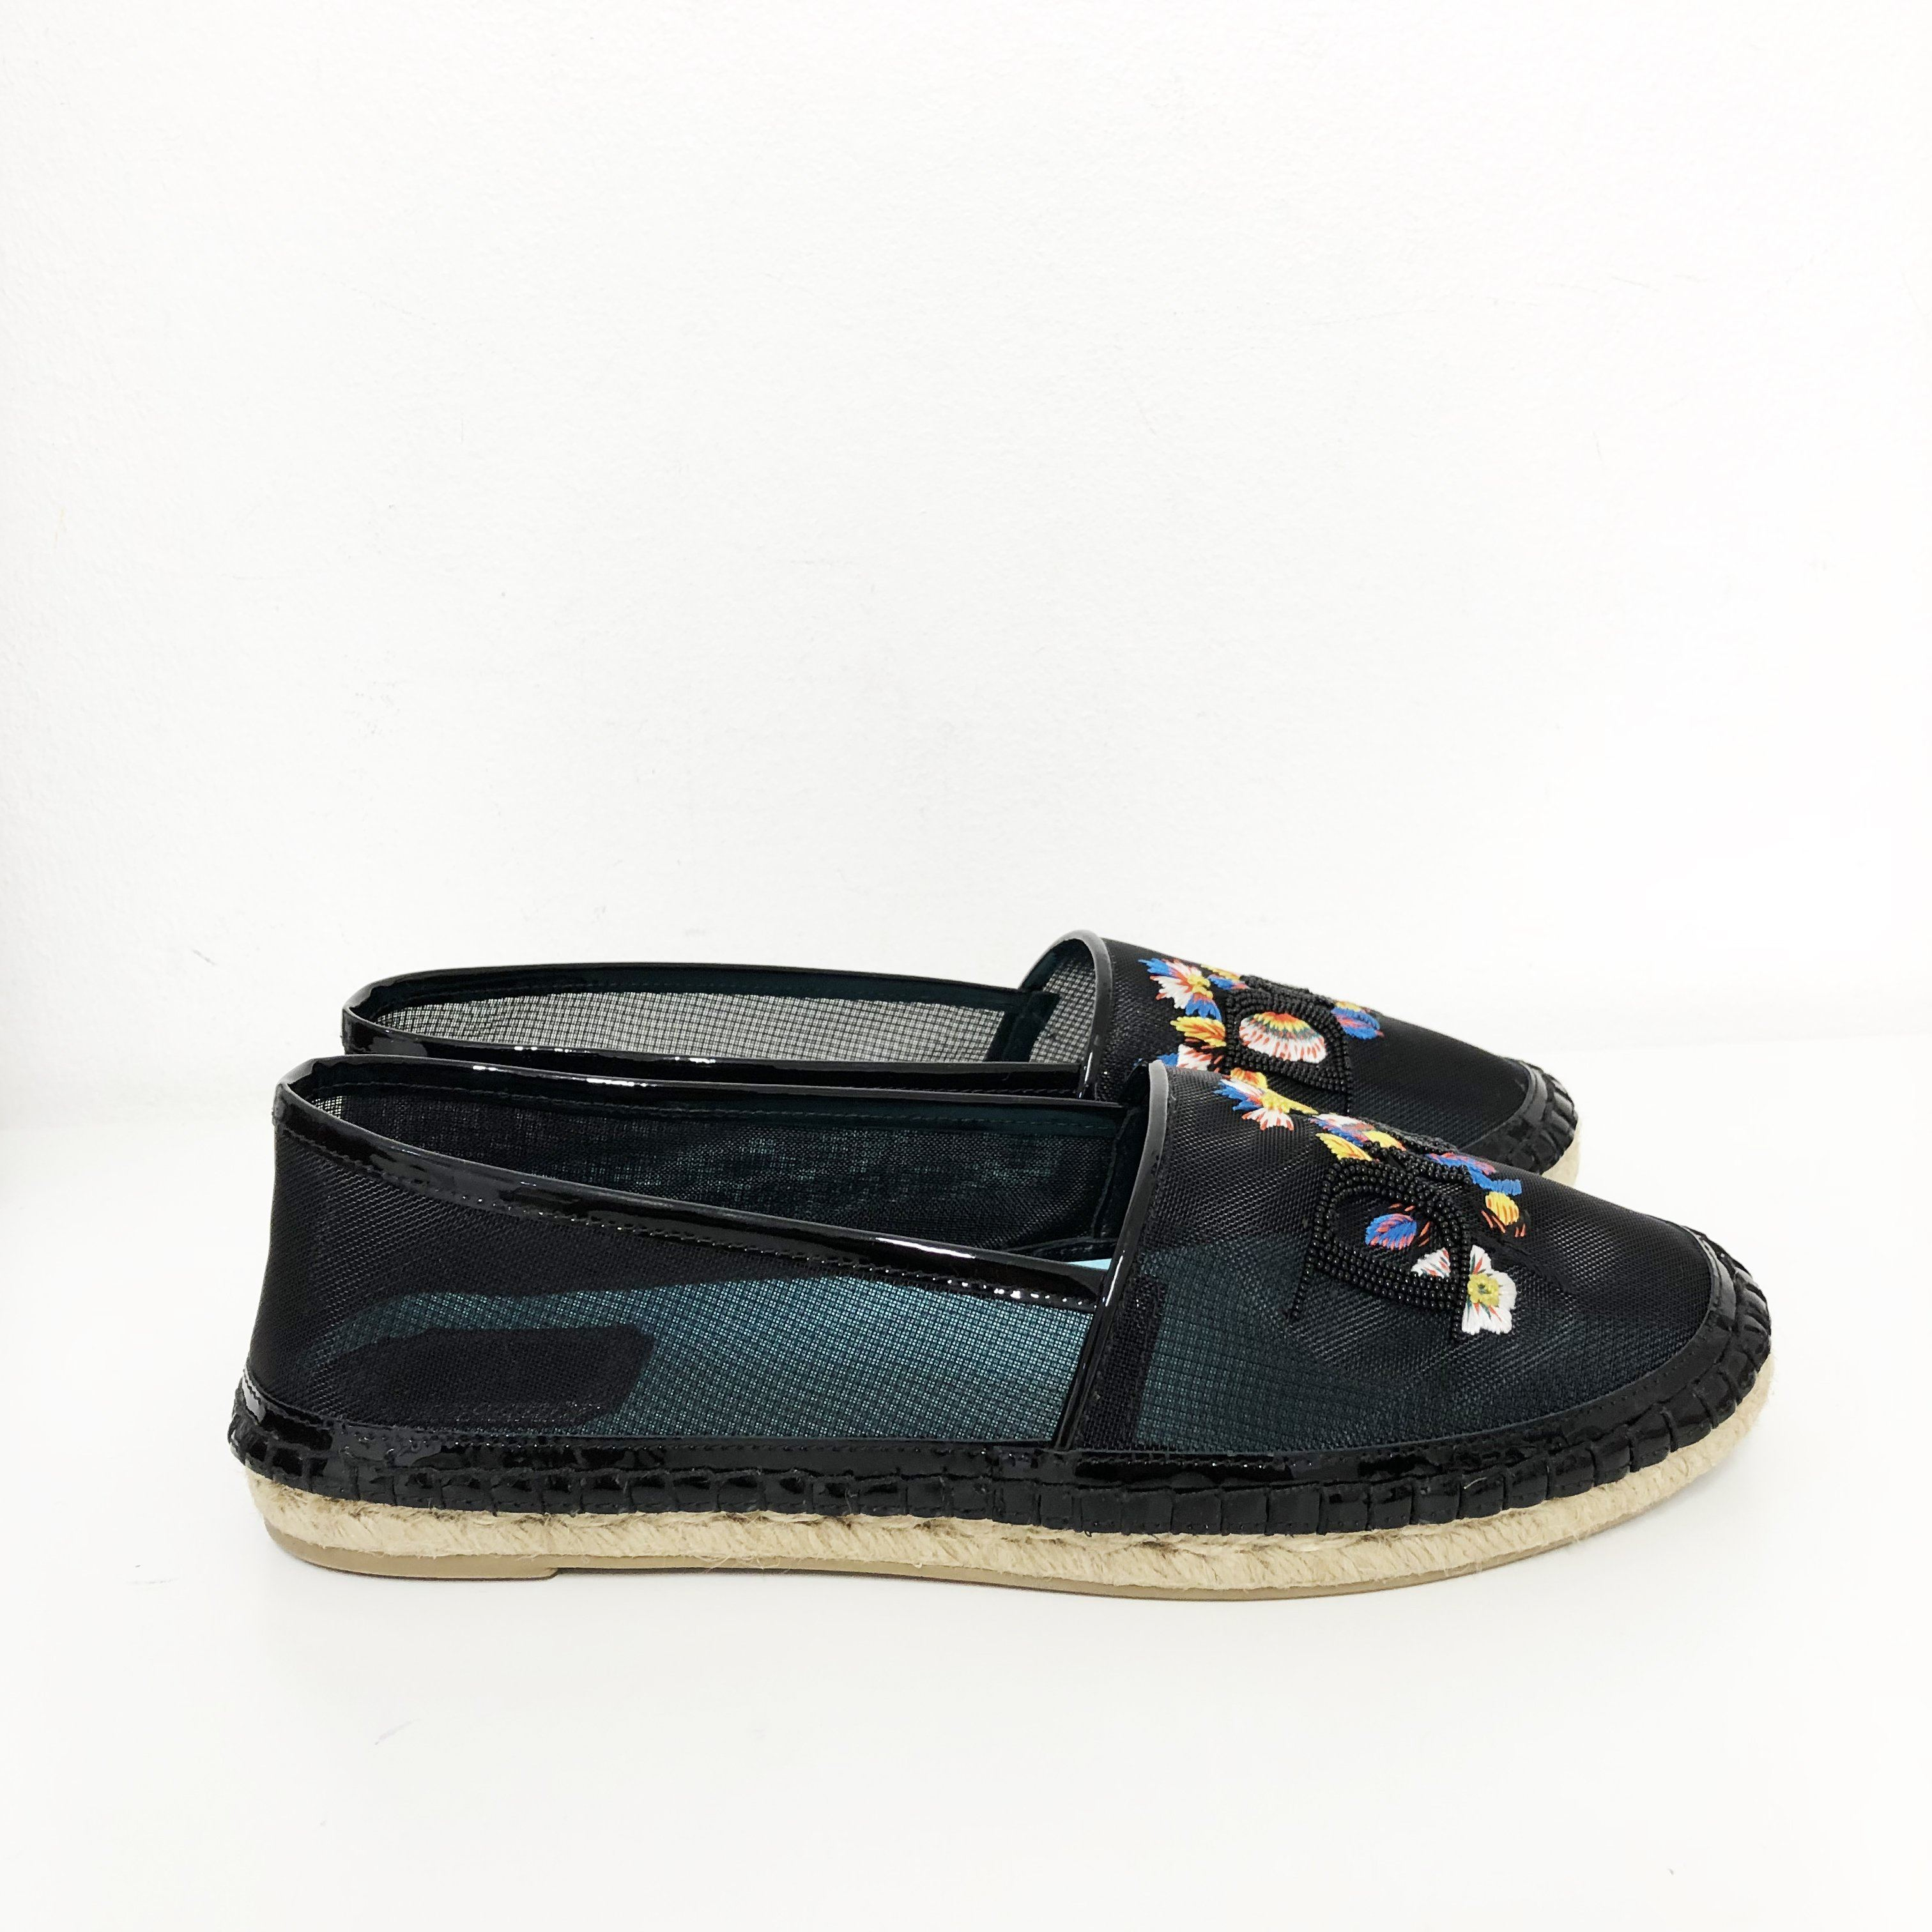 Christian Dior Riviera Embroidered Espadrilles